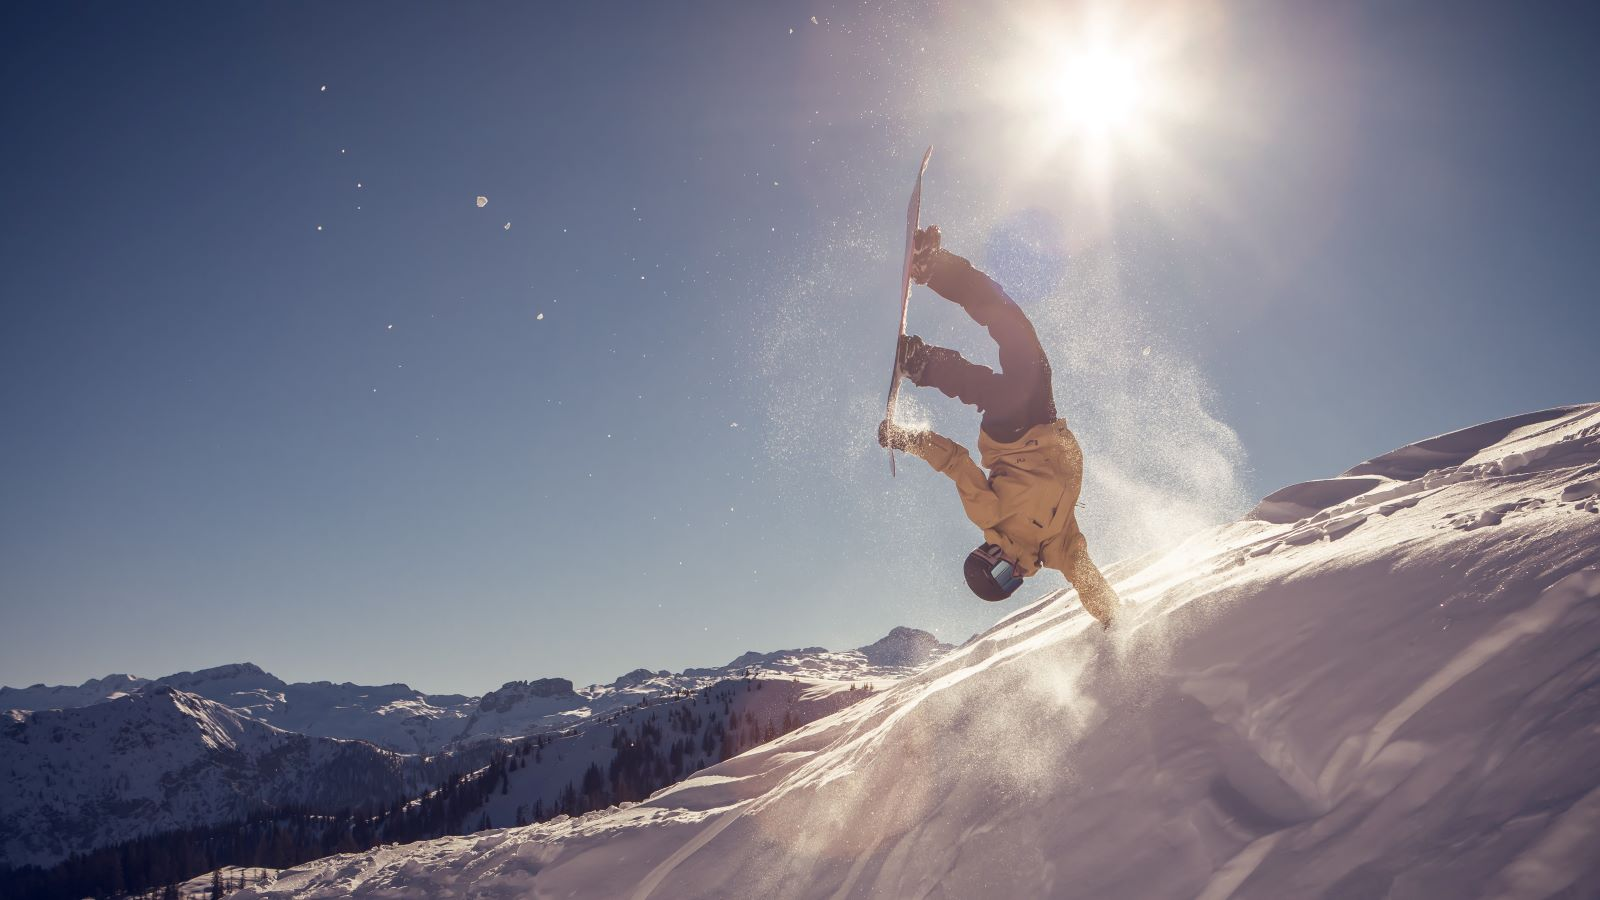 HEAD Snowboards Action Shooting Flachauwinkl